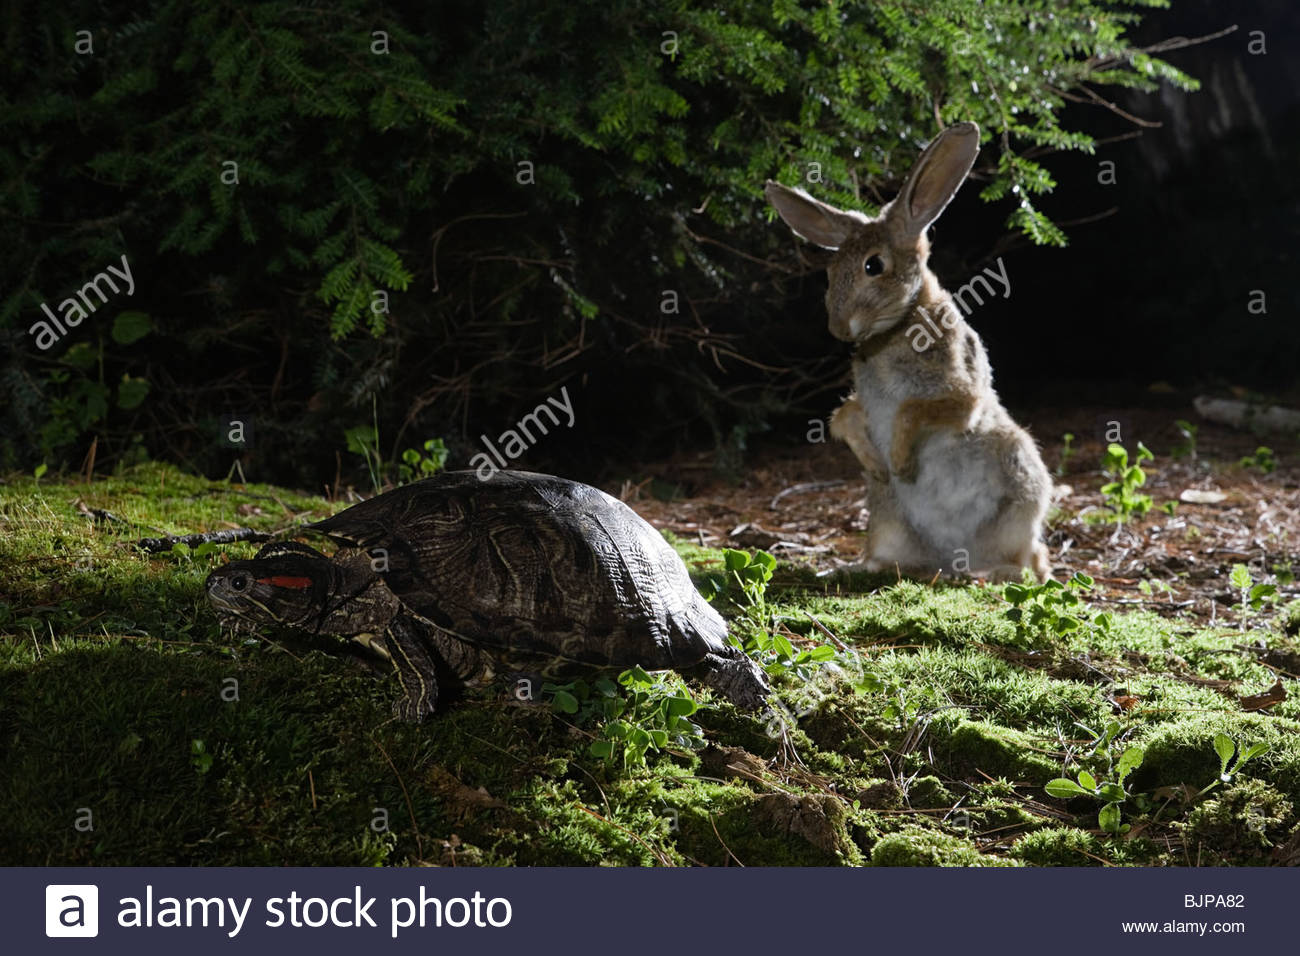 Hare and tortoise - Stock Image